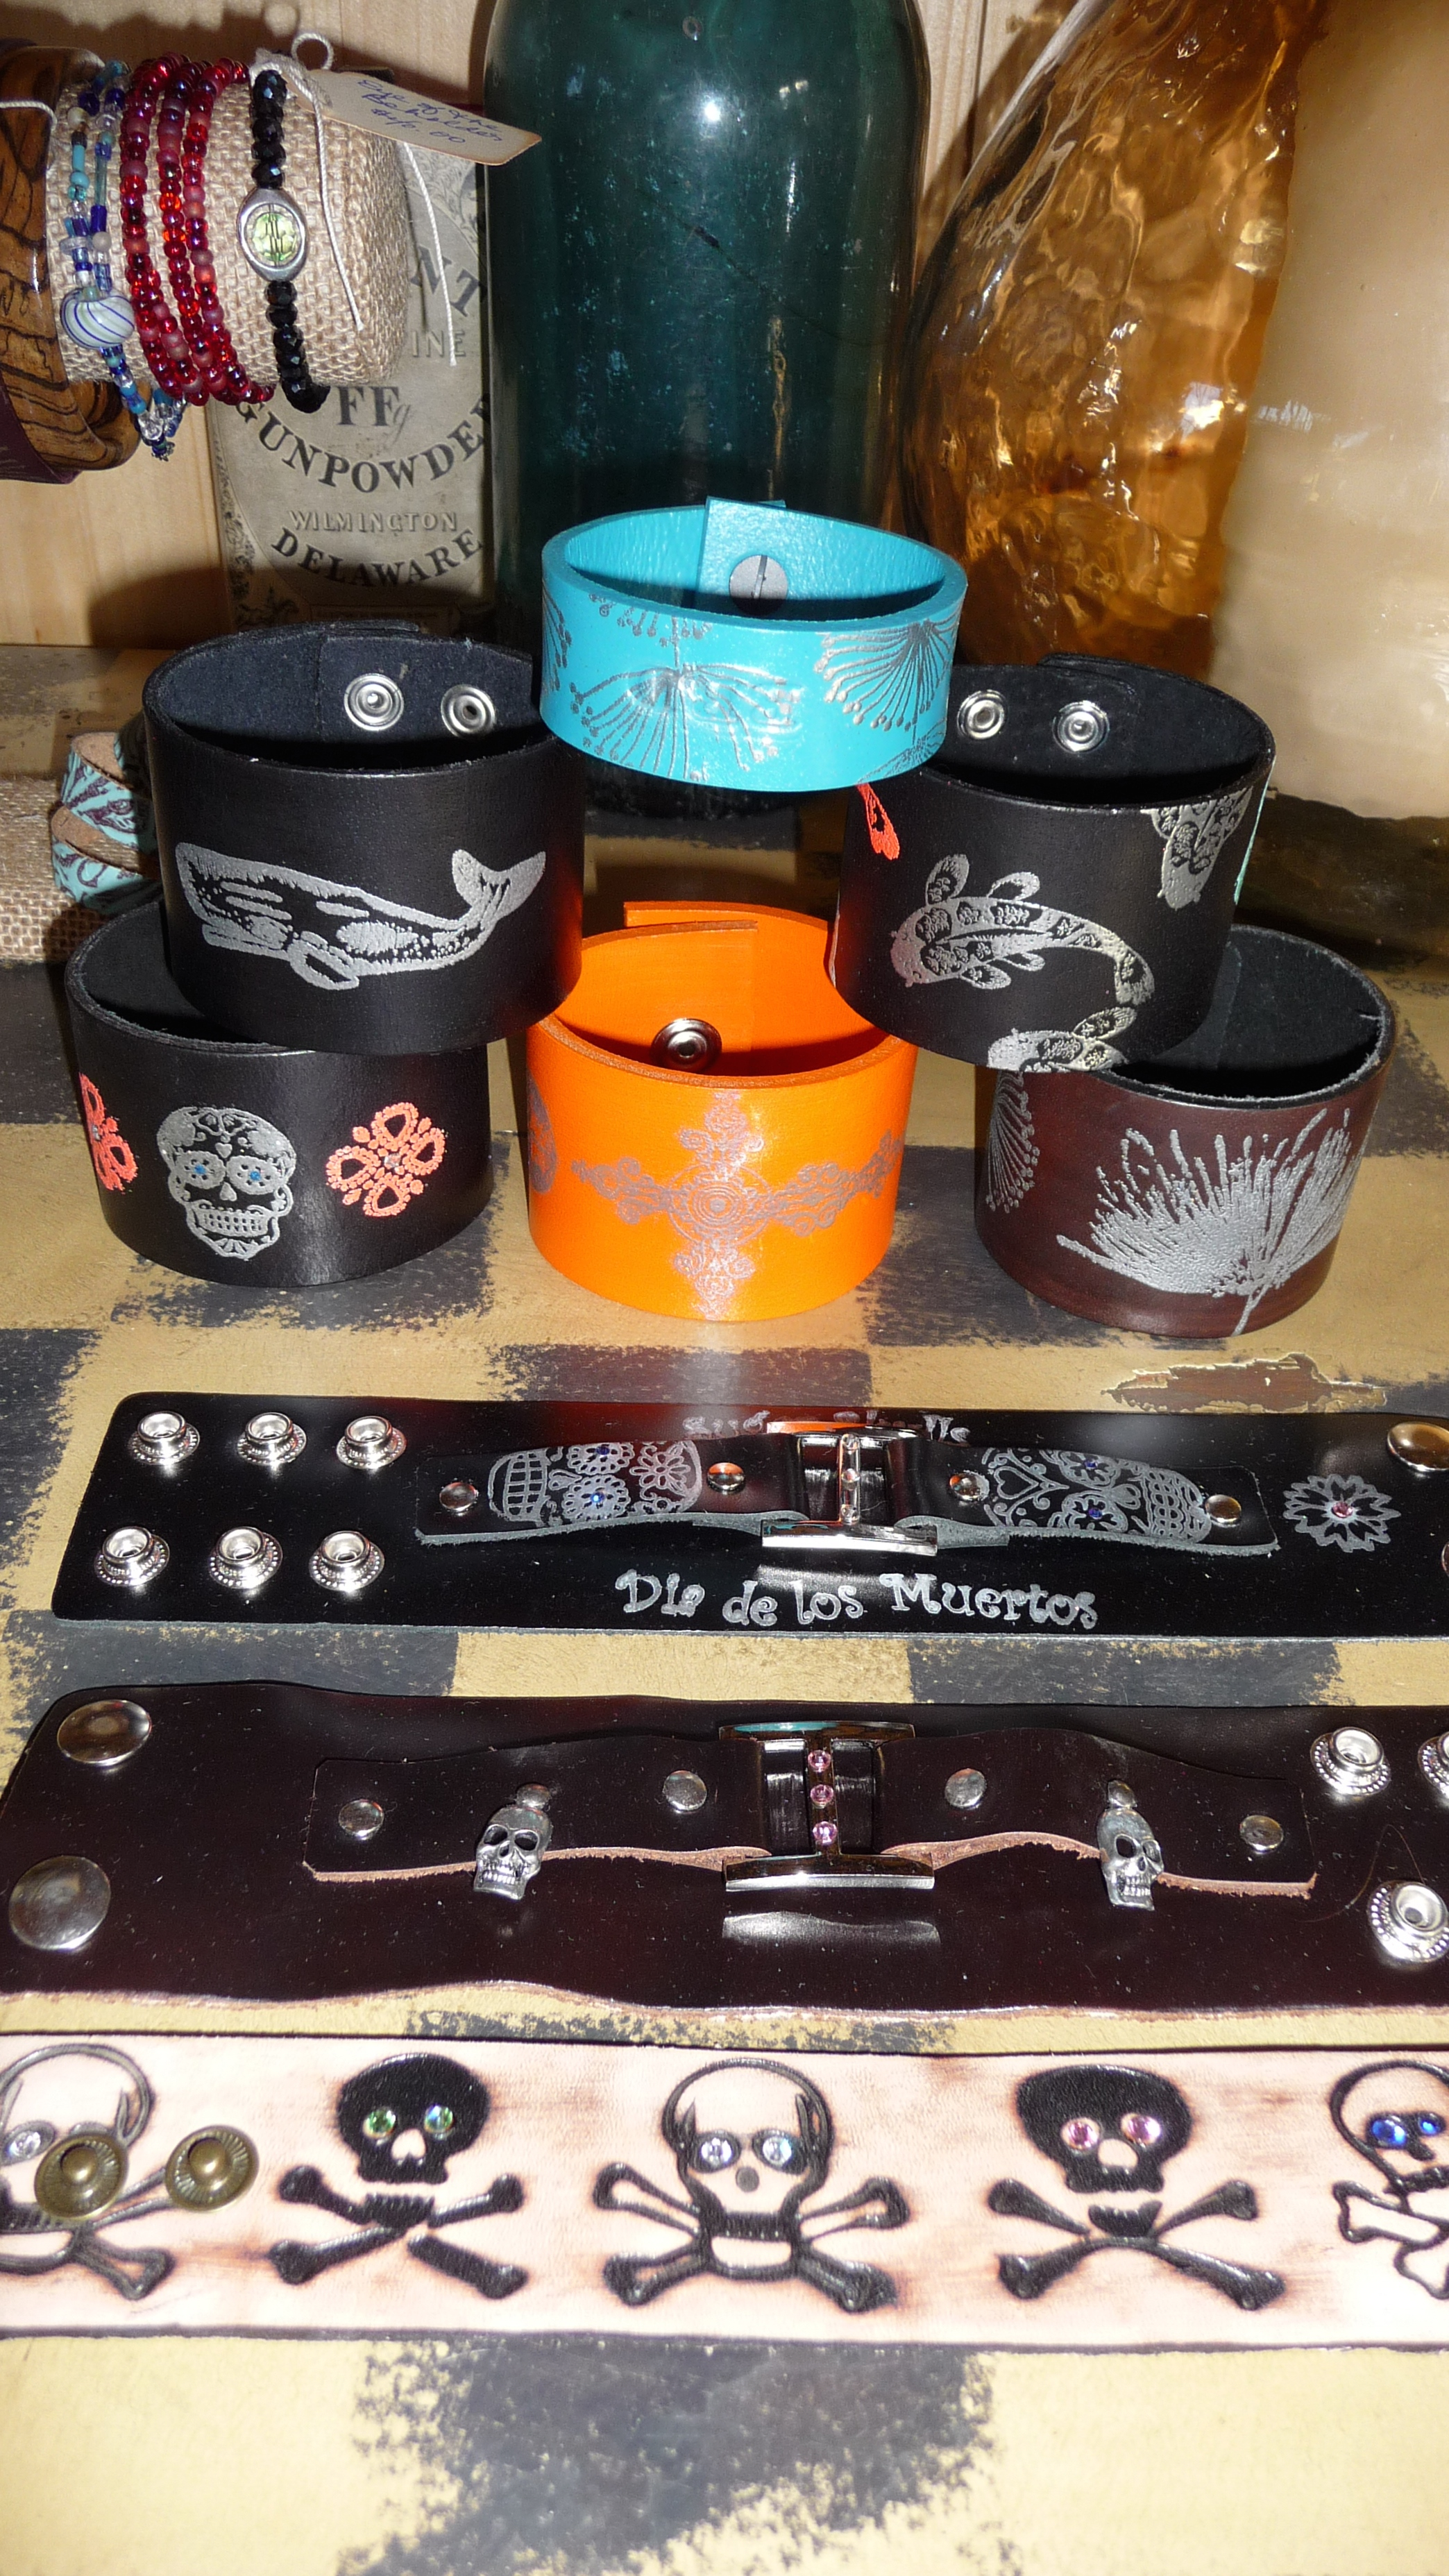 Customize your own cuffs and colors!